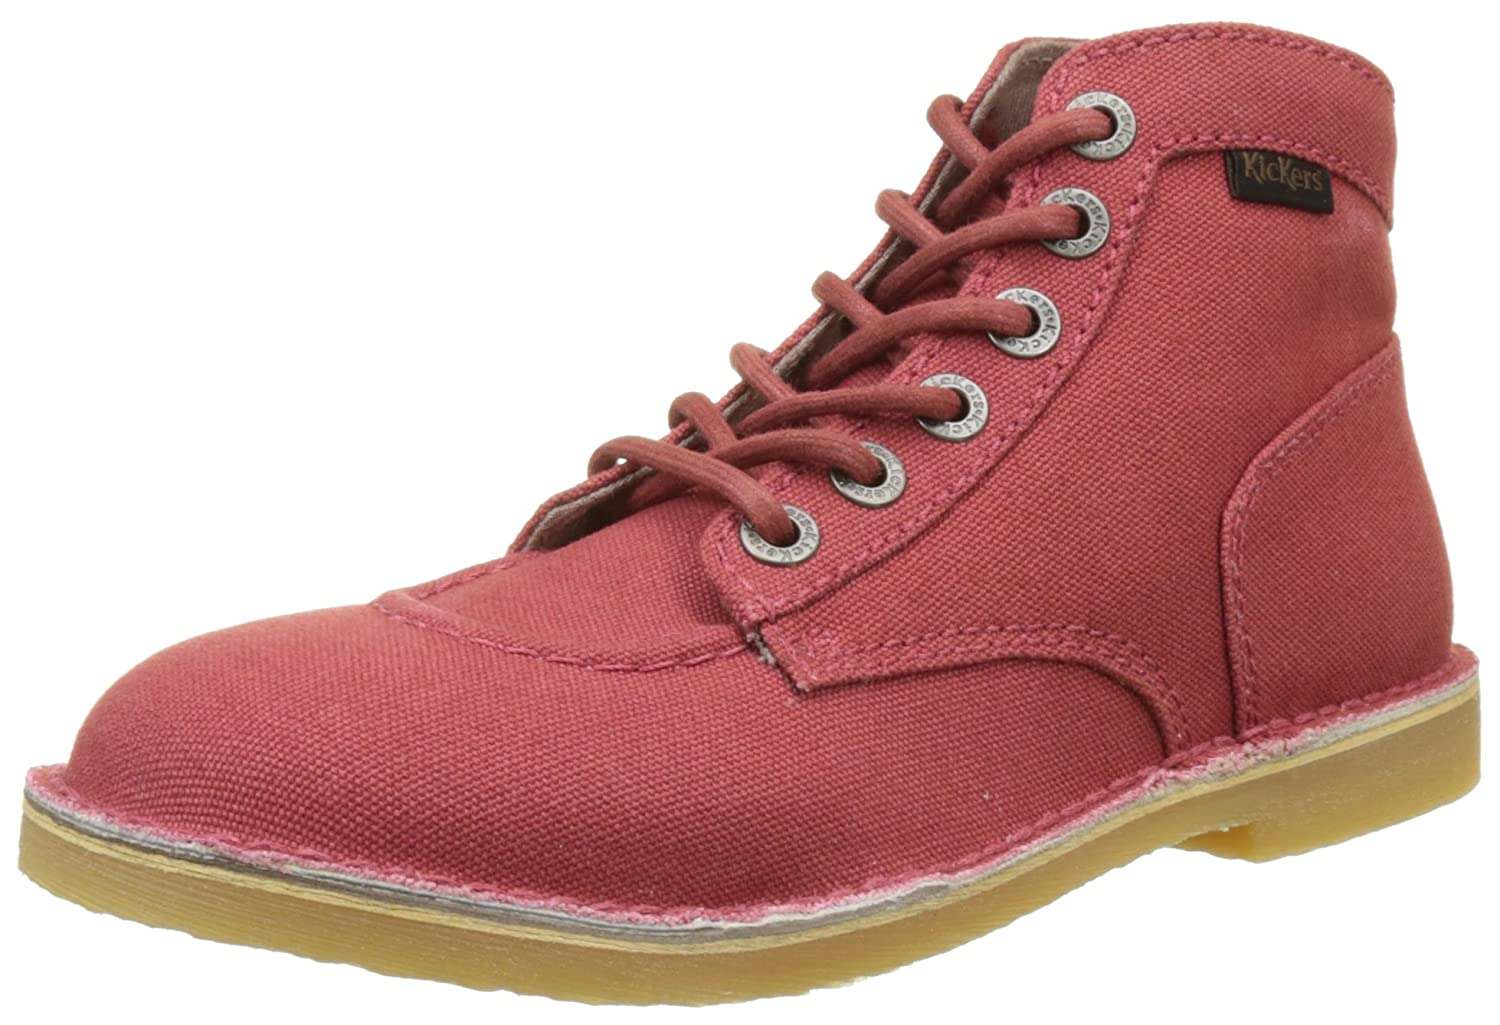 Kickers Orilegend, Scarpe Stringate Derby DonnaRot (Rouge)